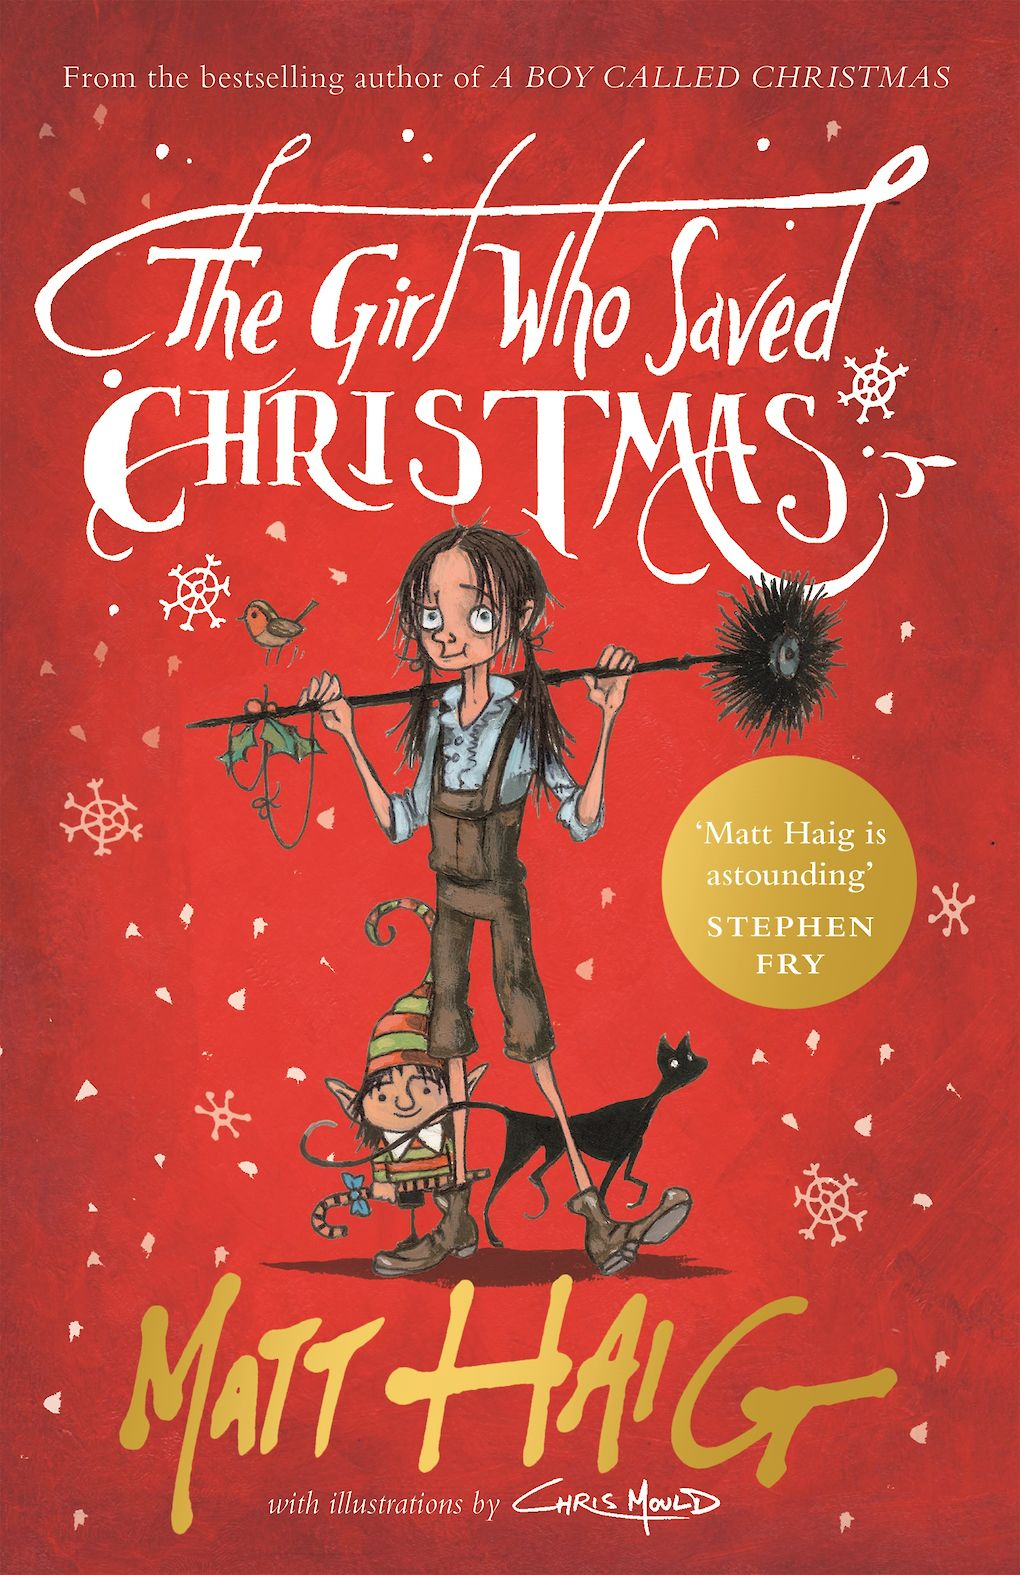 Cover image for the book The Girl Who Saved Christmas with illustrations by Chris Mould